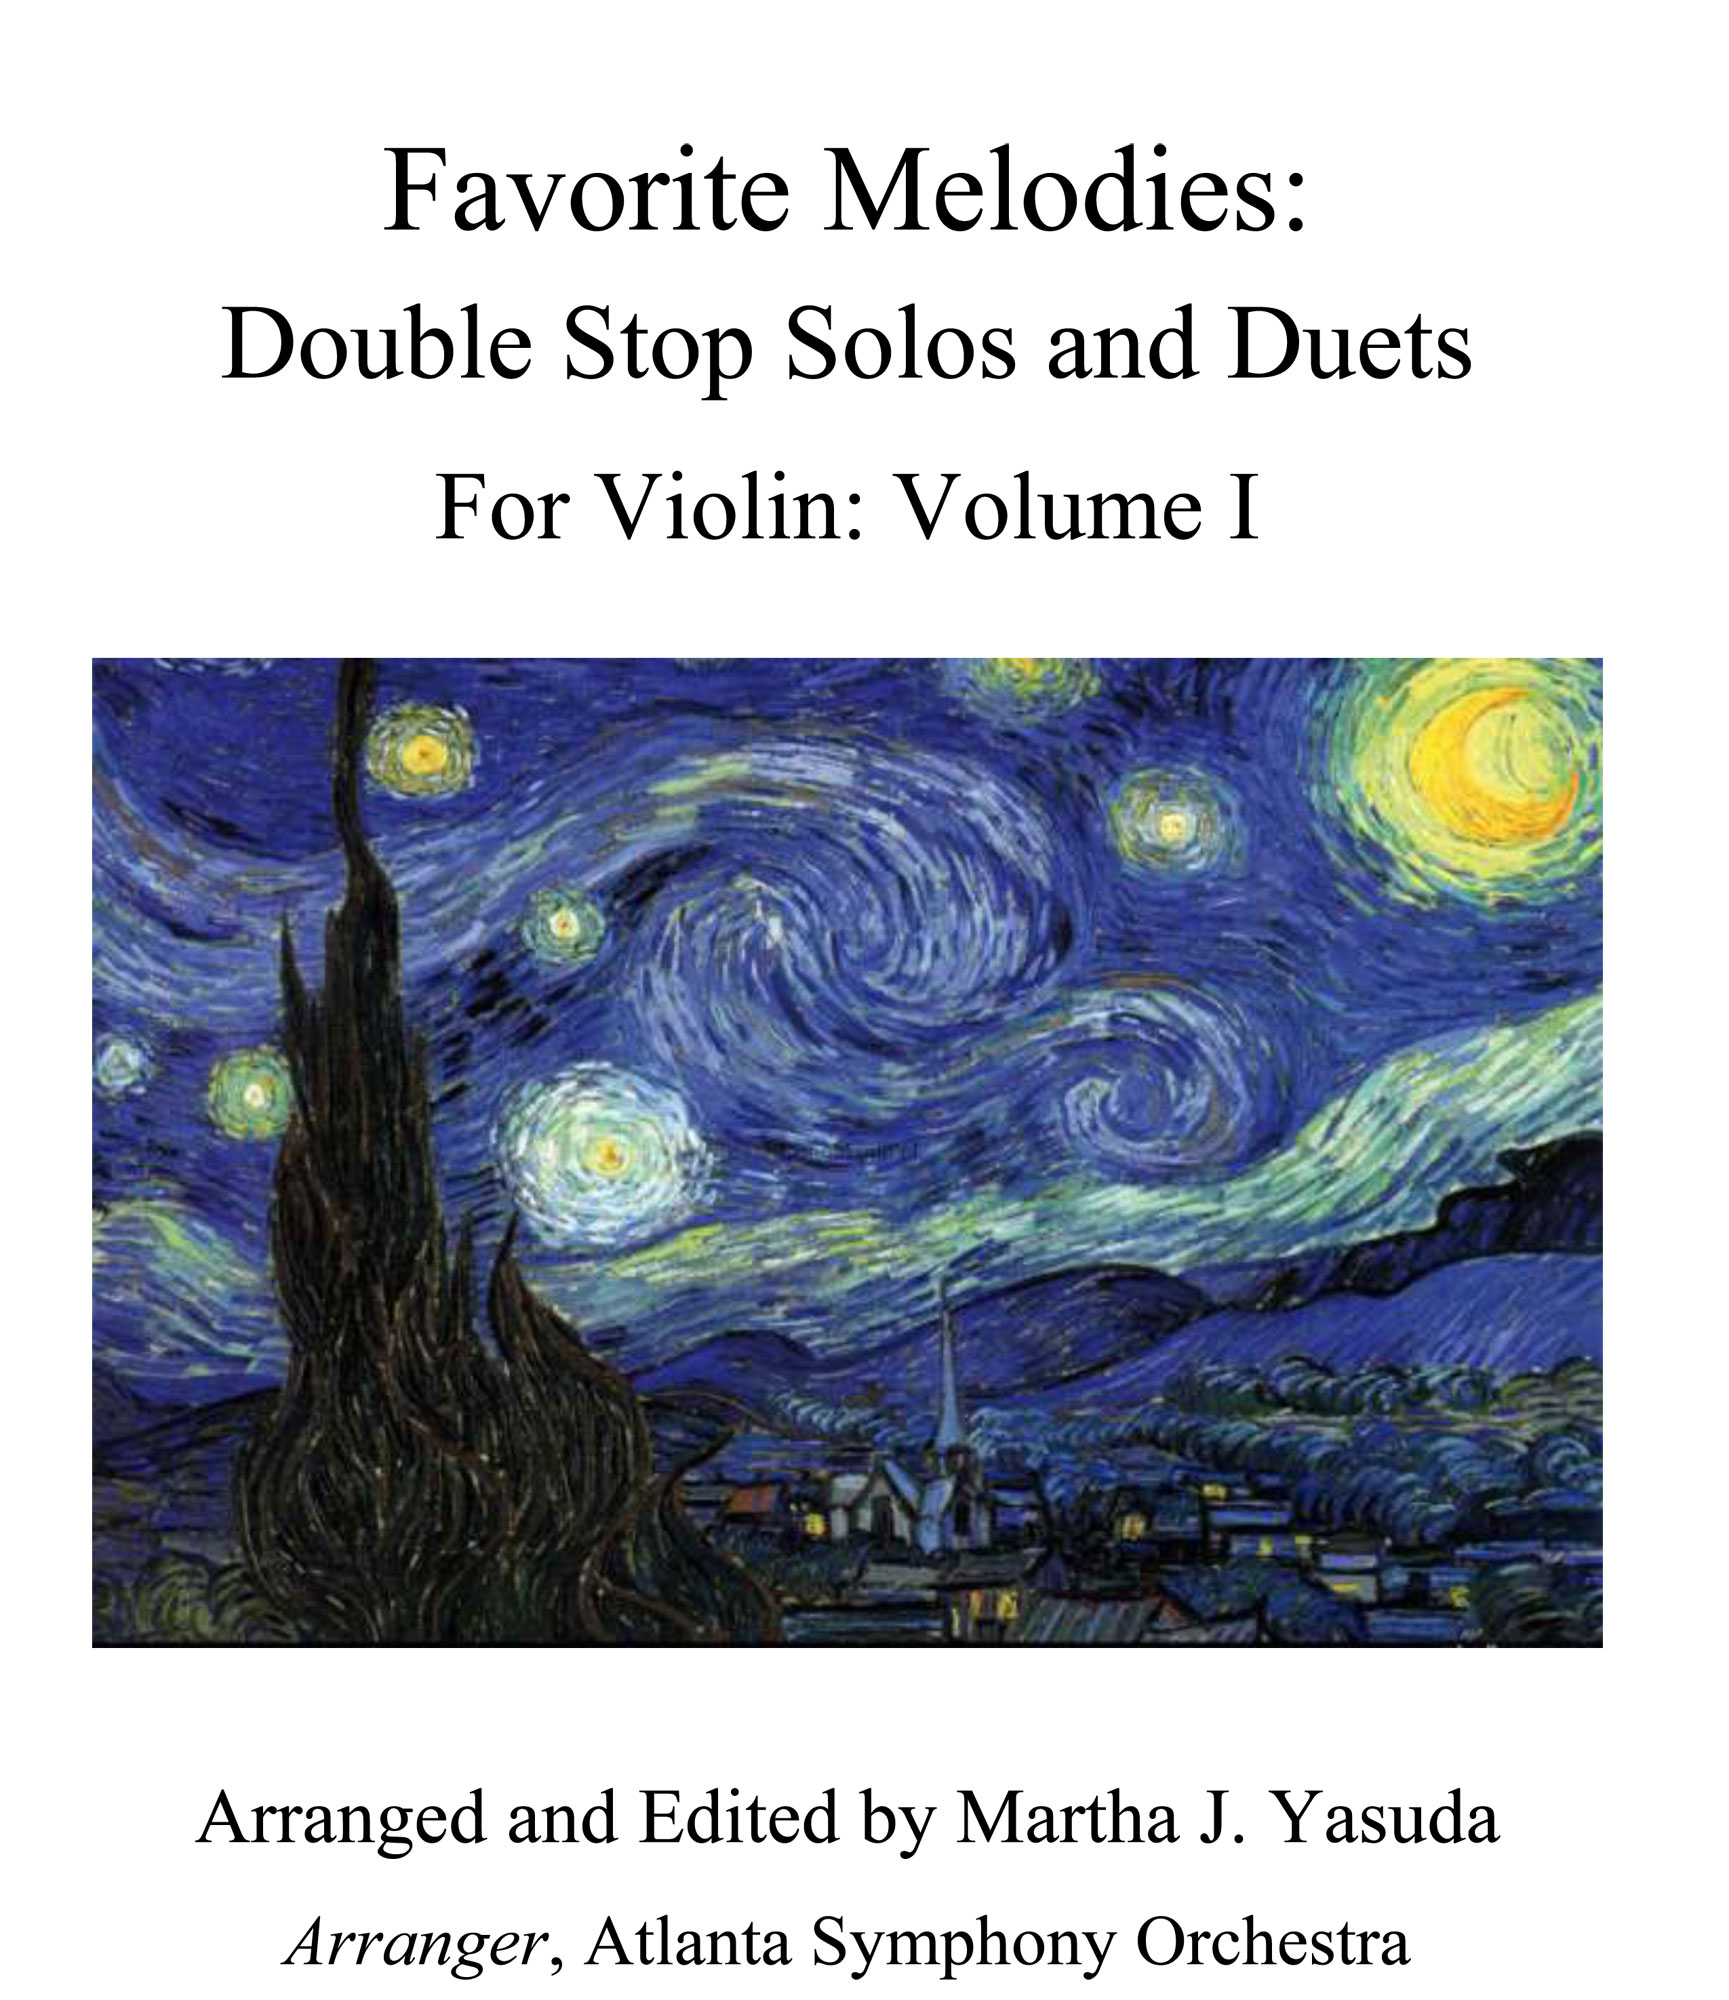 Writing withSIZZLE: Introducing Martha Yasuda's Arrangements of Classic Works and Favorites